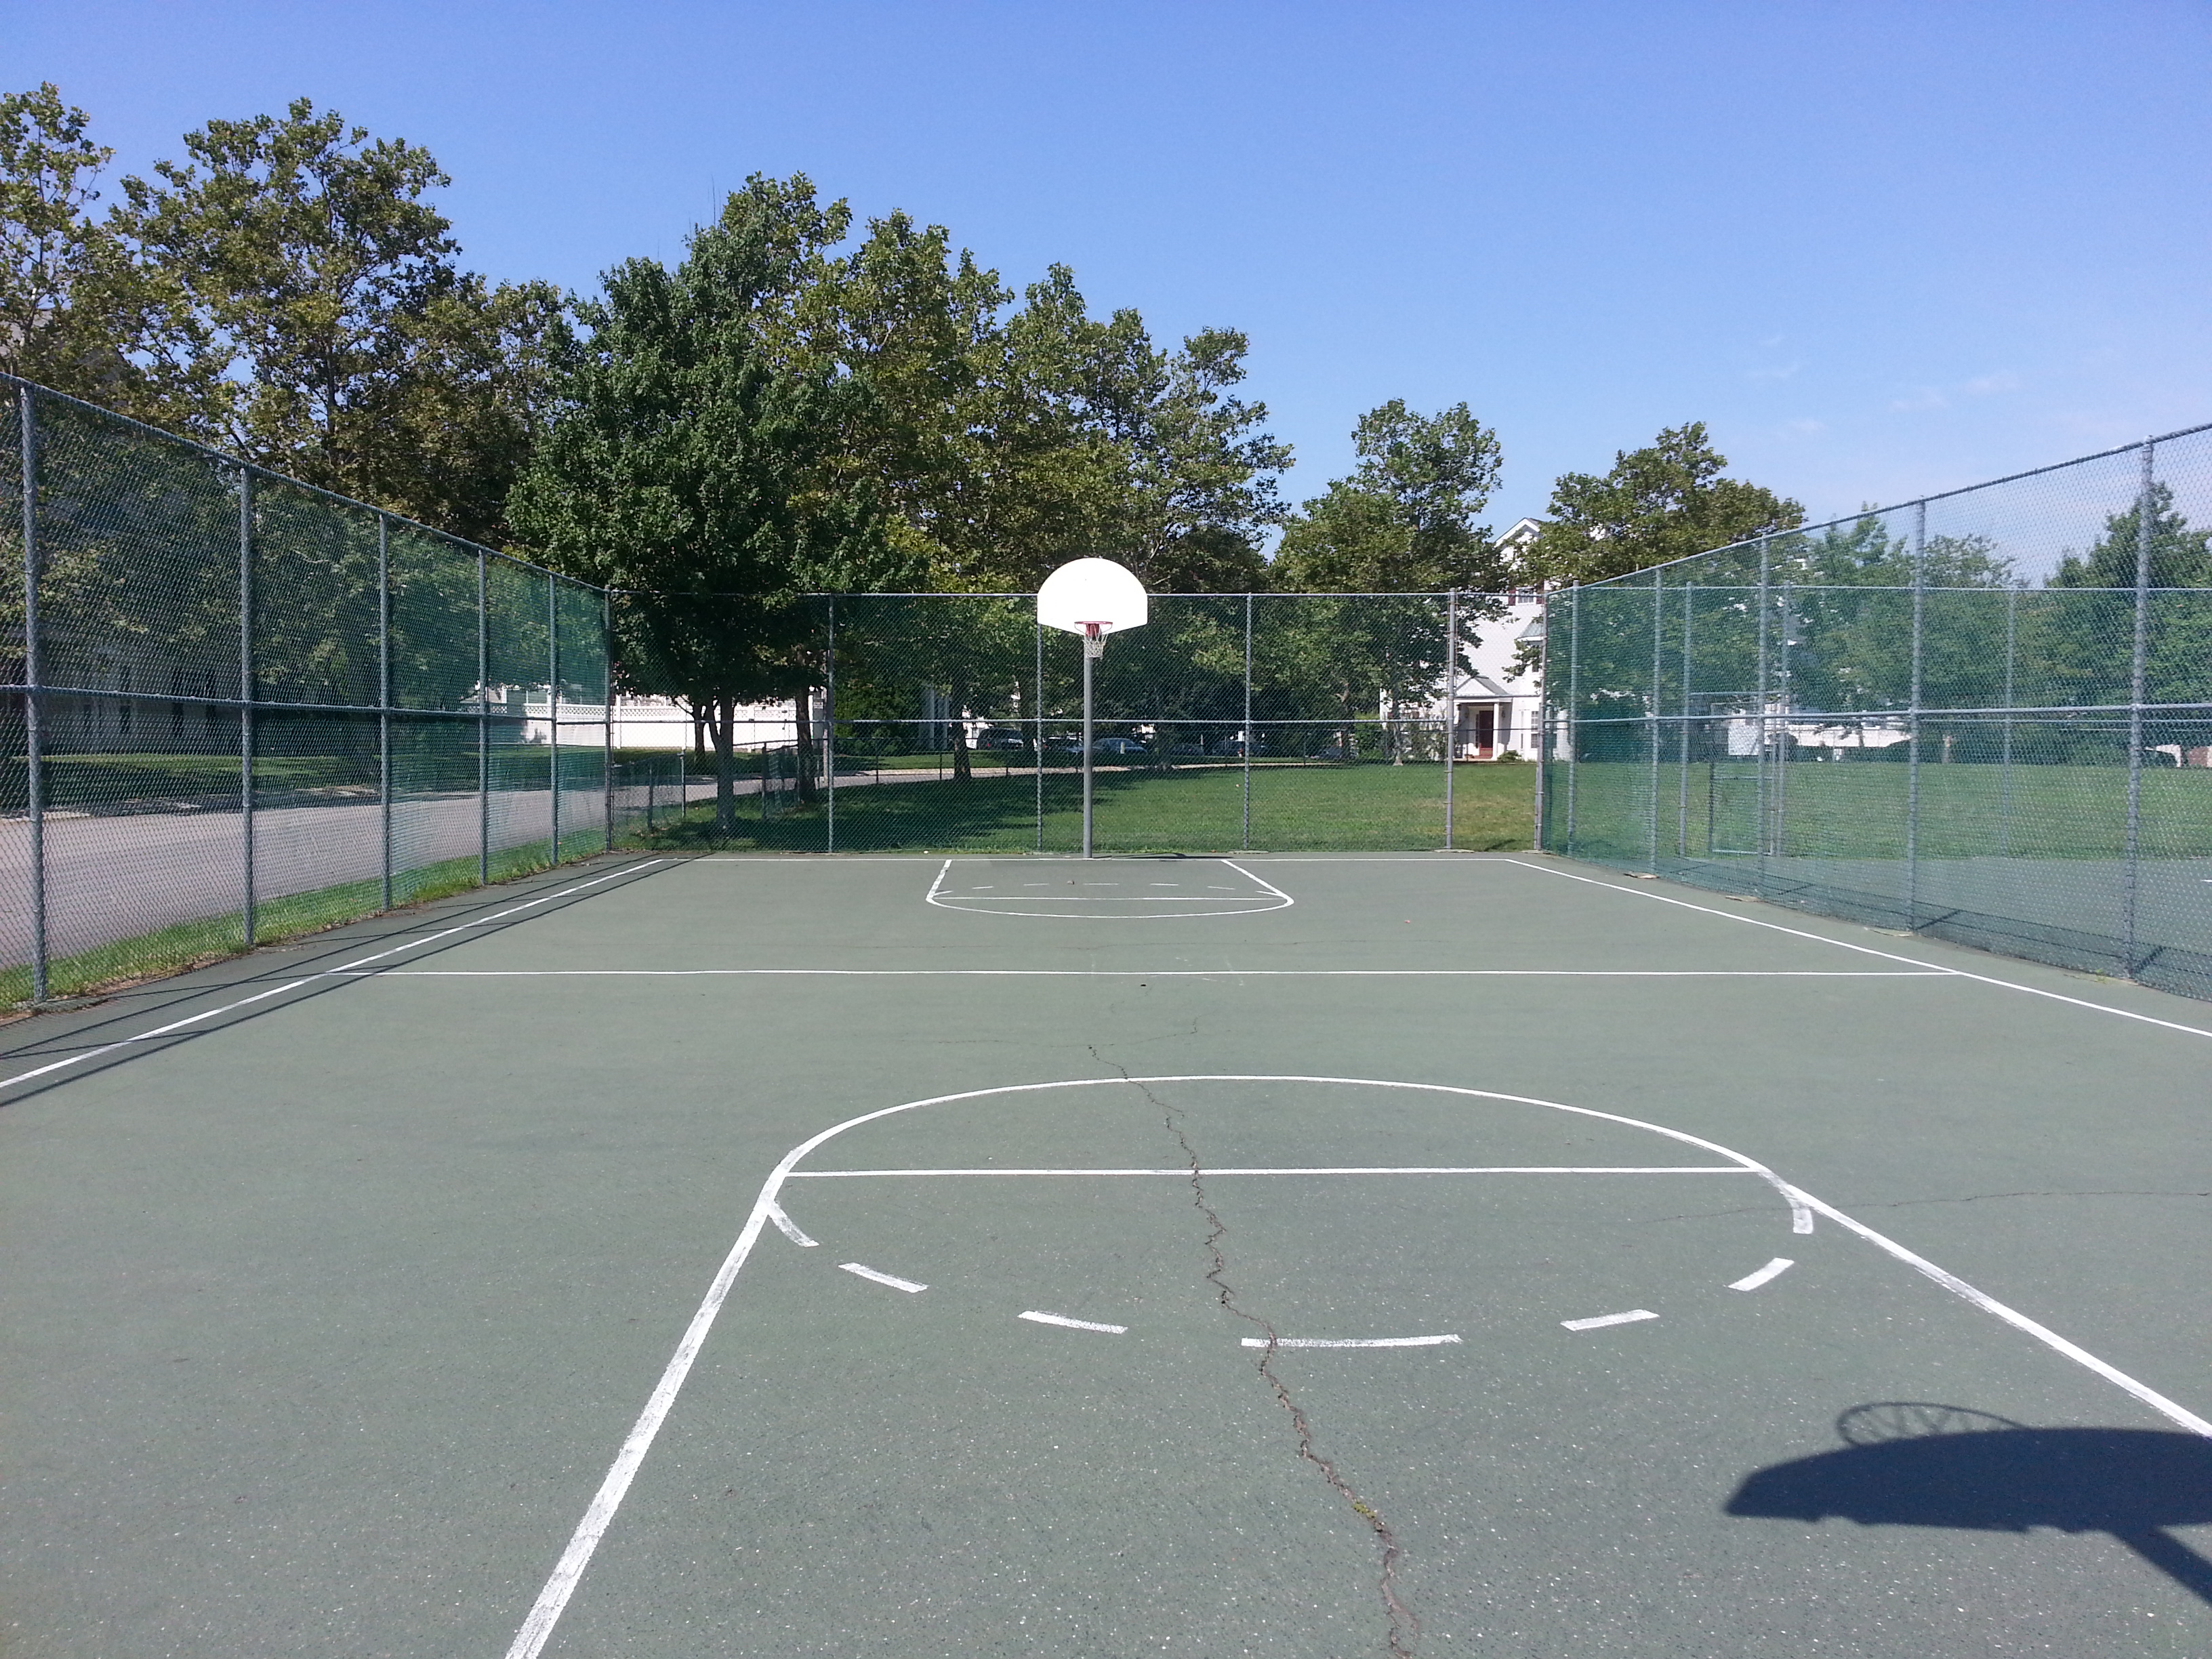 Next to The Orchards tennis court is this basketball court.